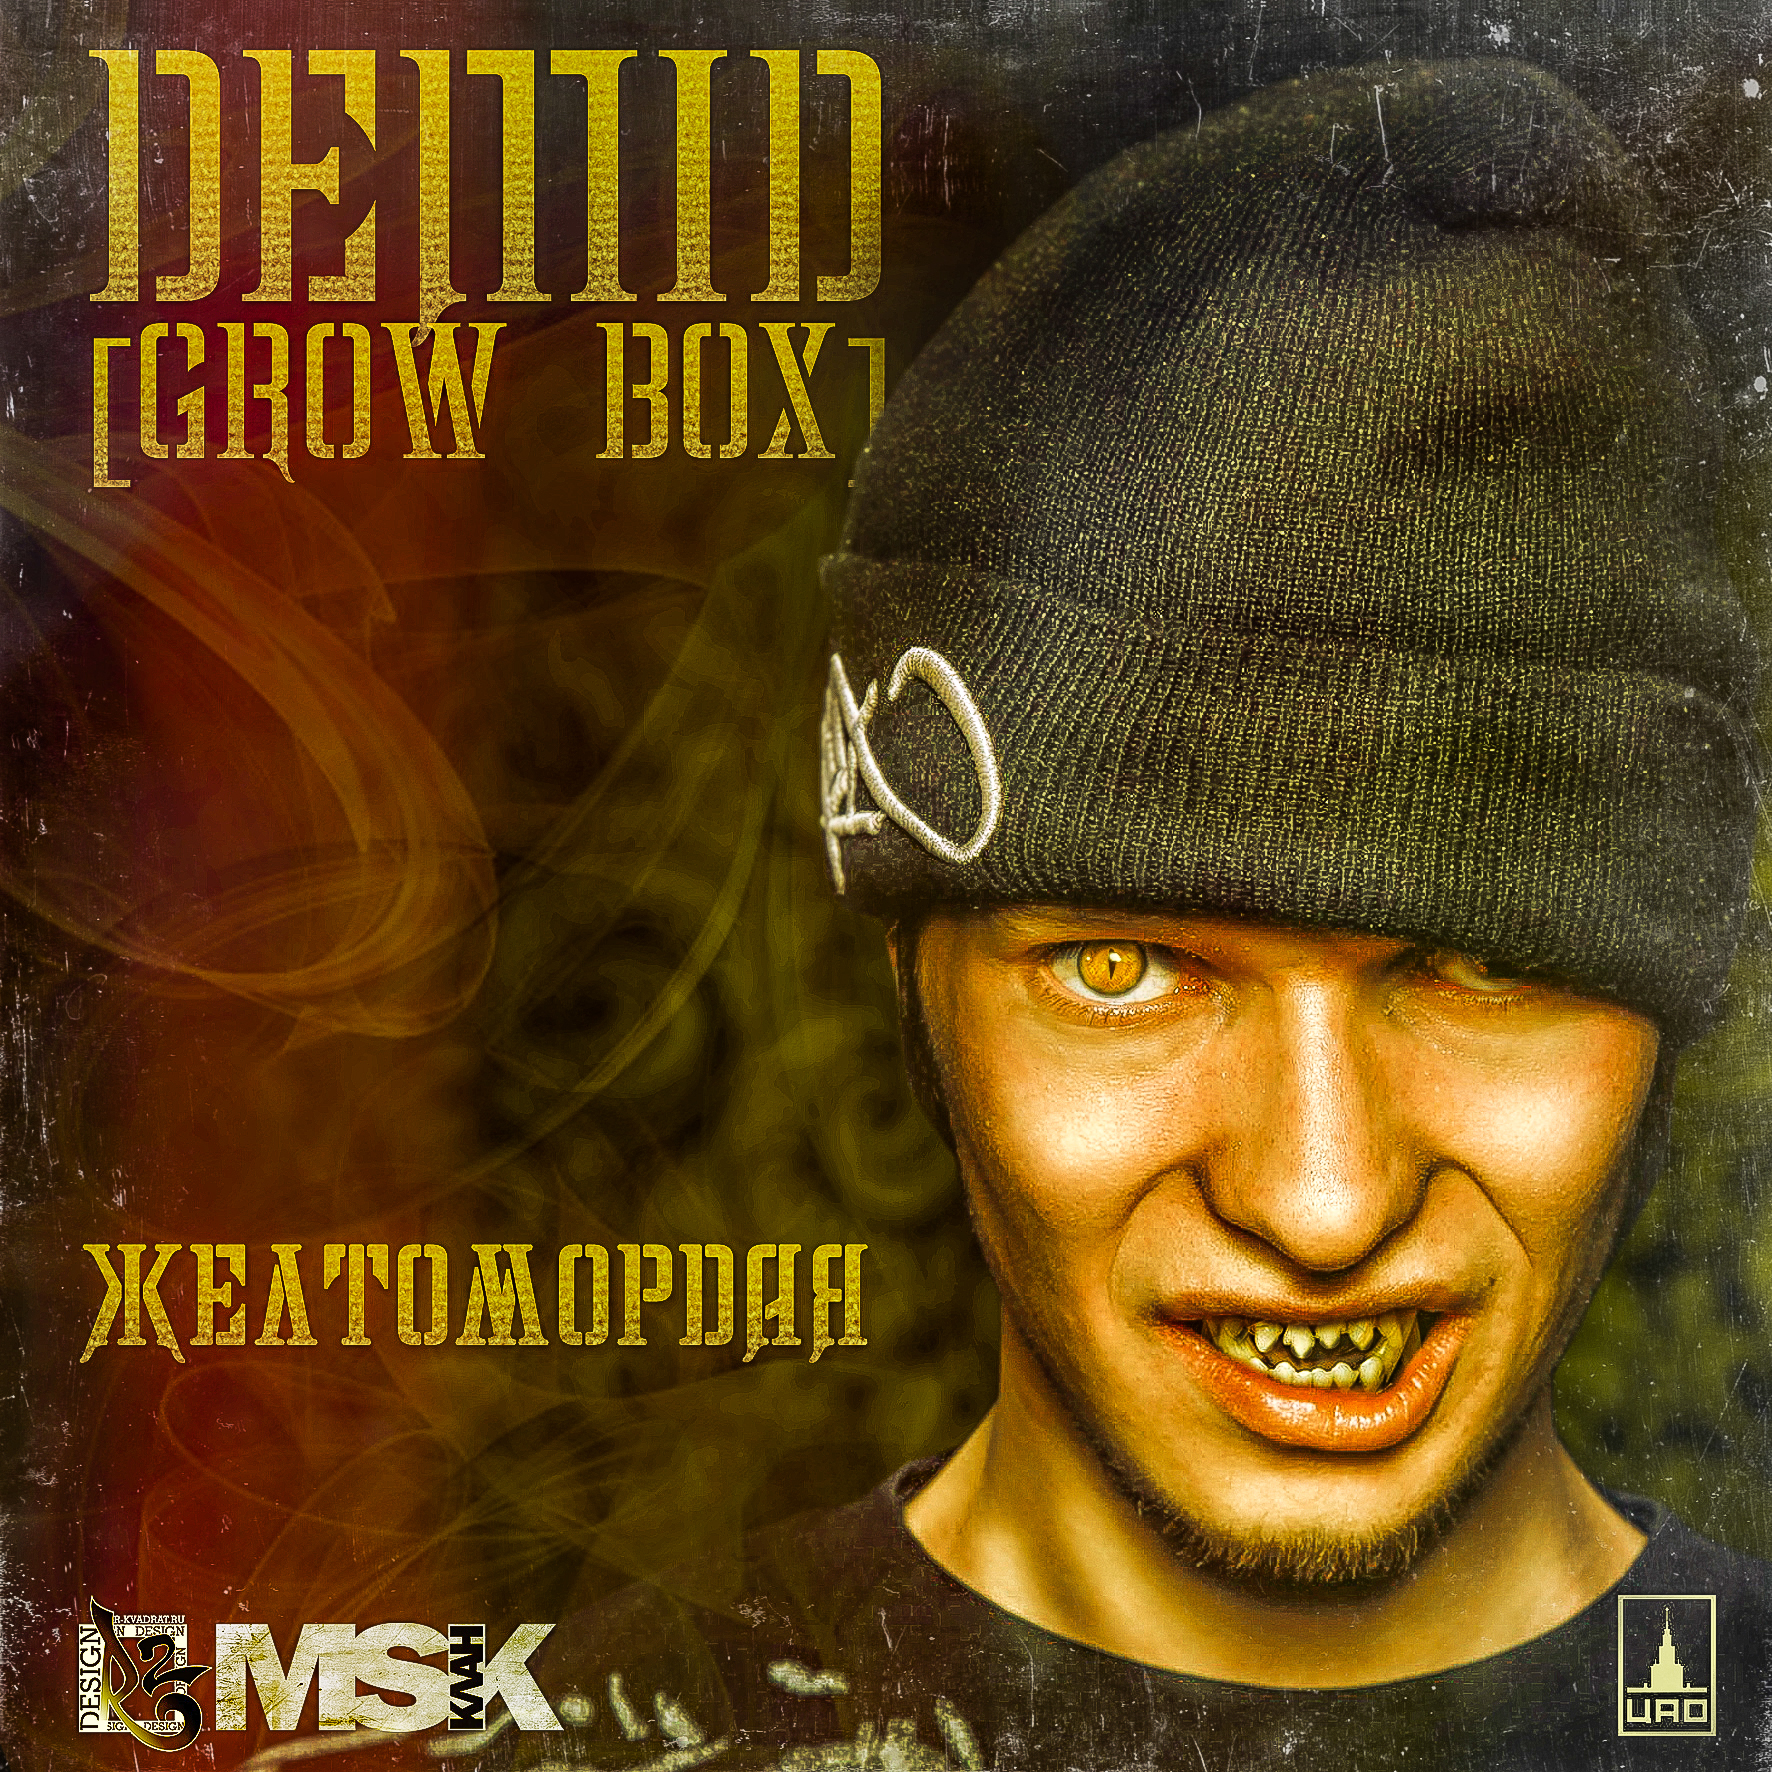 Demid [Grow Box] - Желтомордая